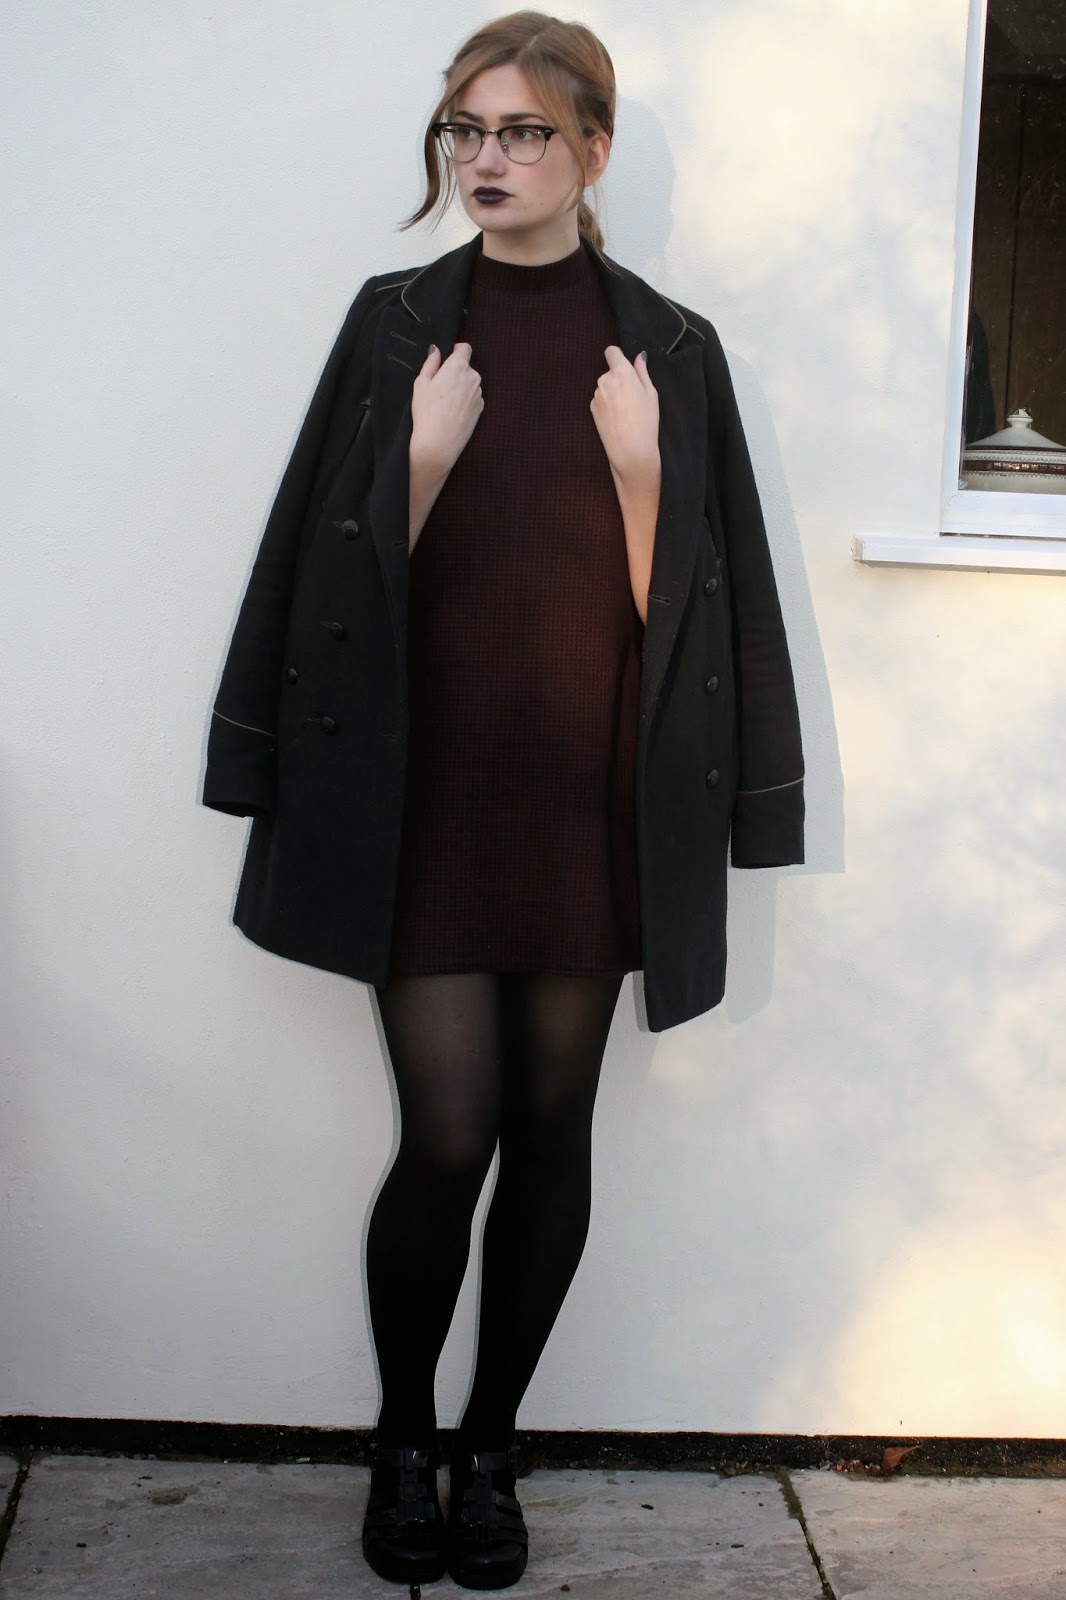 ALL DEATH BY DIAMONDS OUTFIT OF THE DAY HOUNDSTOOTH TURTLENECK DRESS